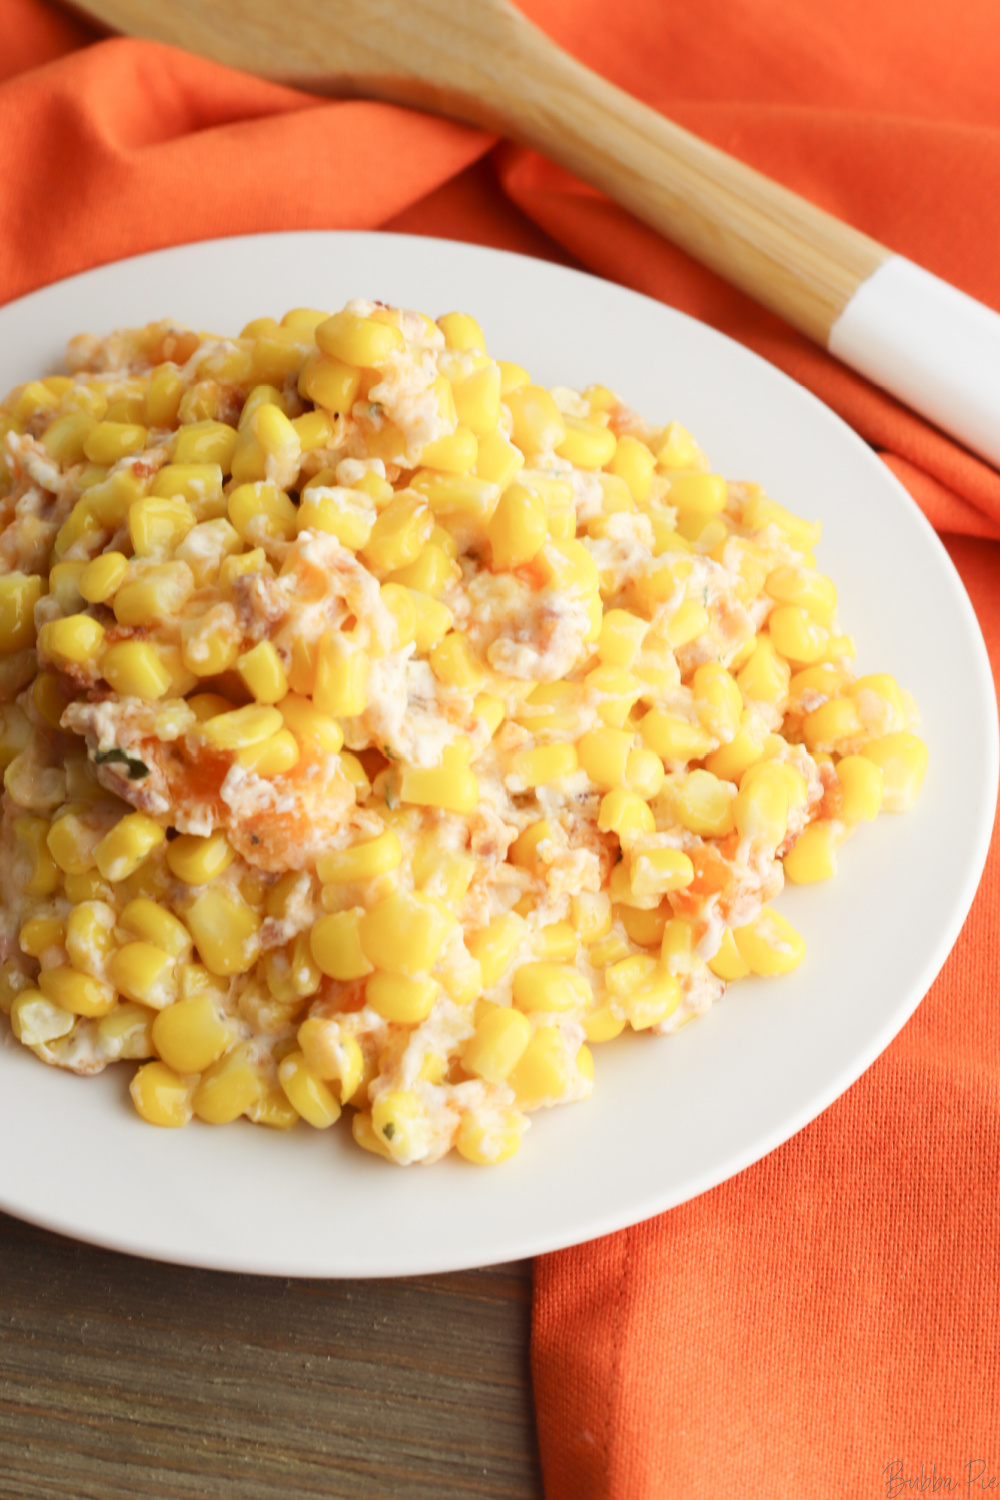 Cream Cheese Corn Casserole with Bacon being served as a side dish.